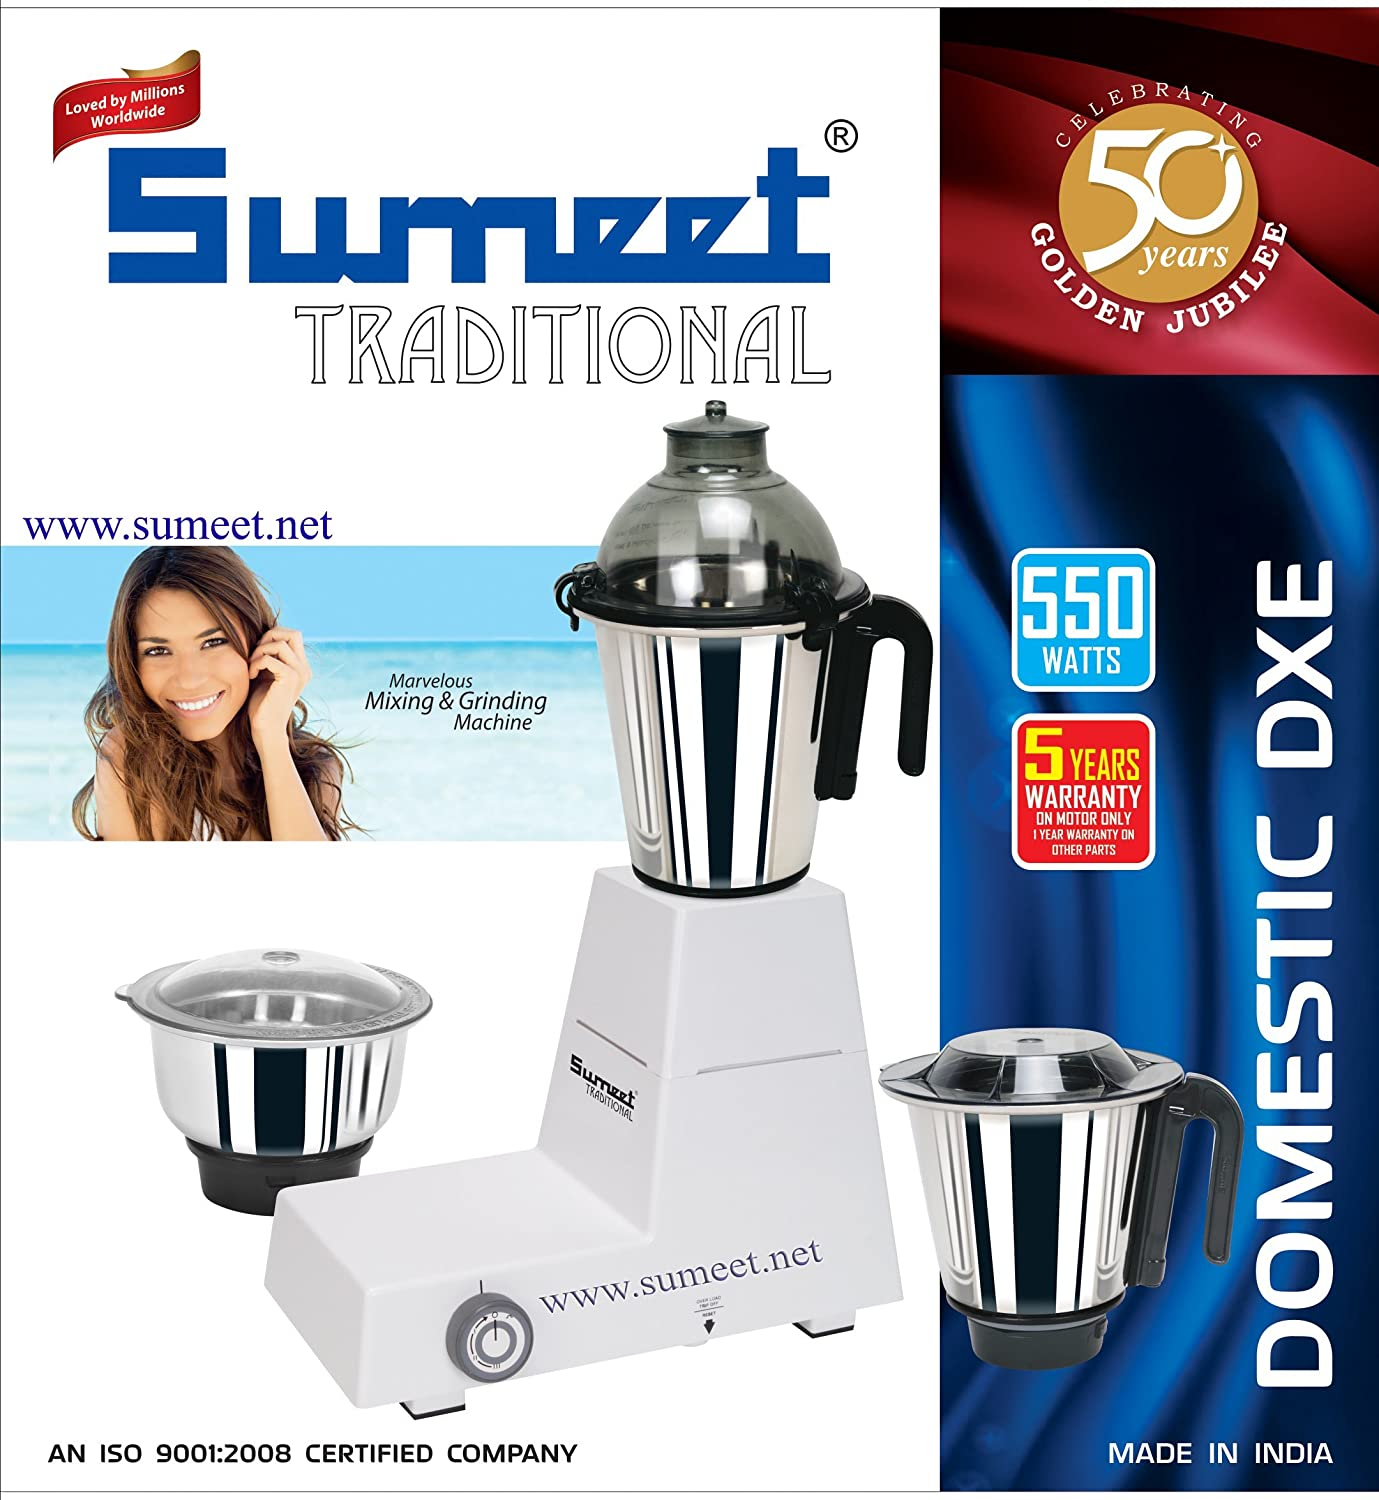 White Sumeet Domestic-dxe 110v Traditional Indian Mixer Grinder